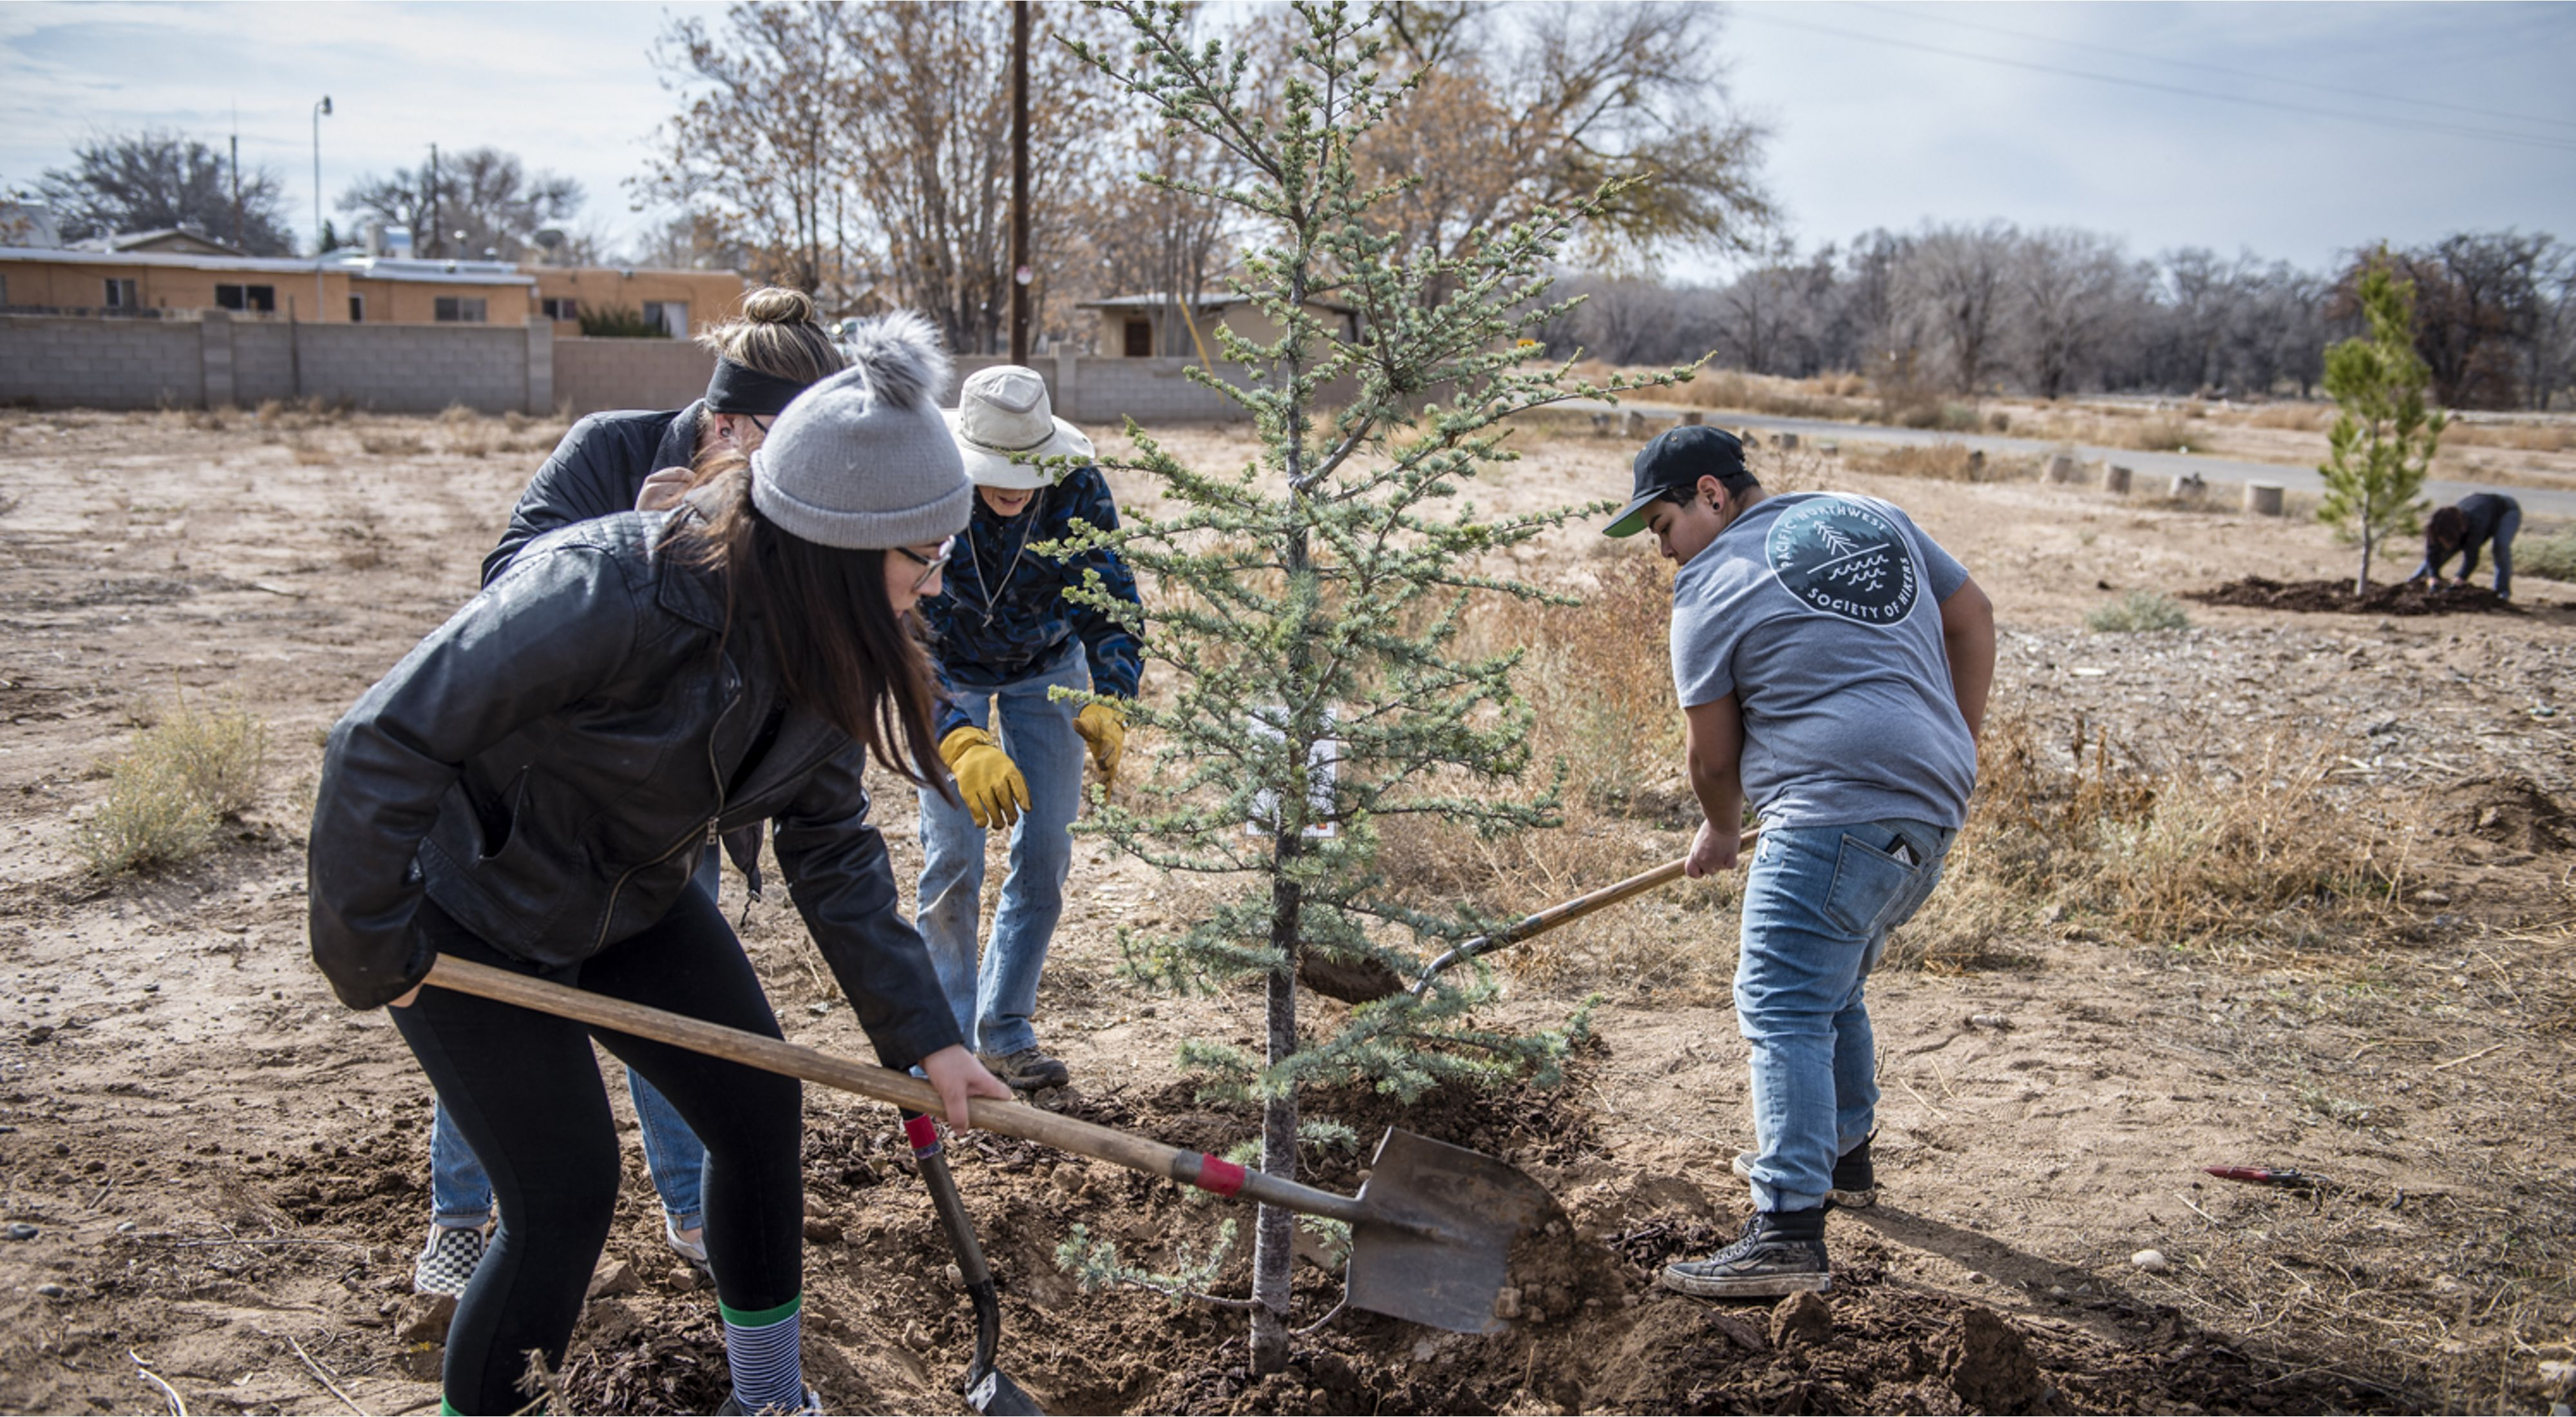 Four people with shovels plant an evergreen tree.